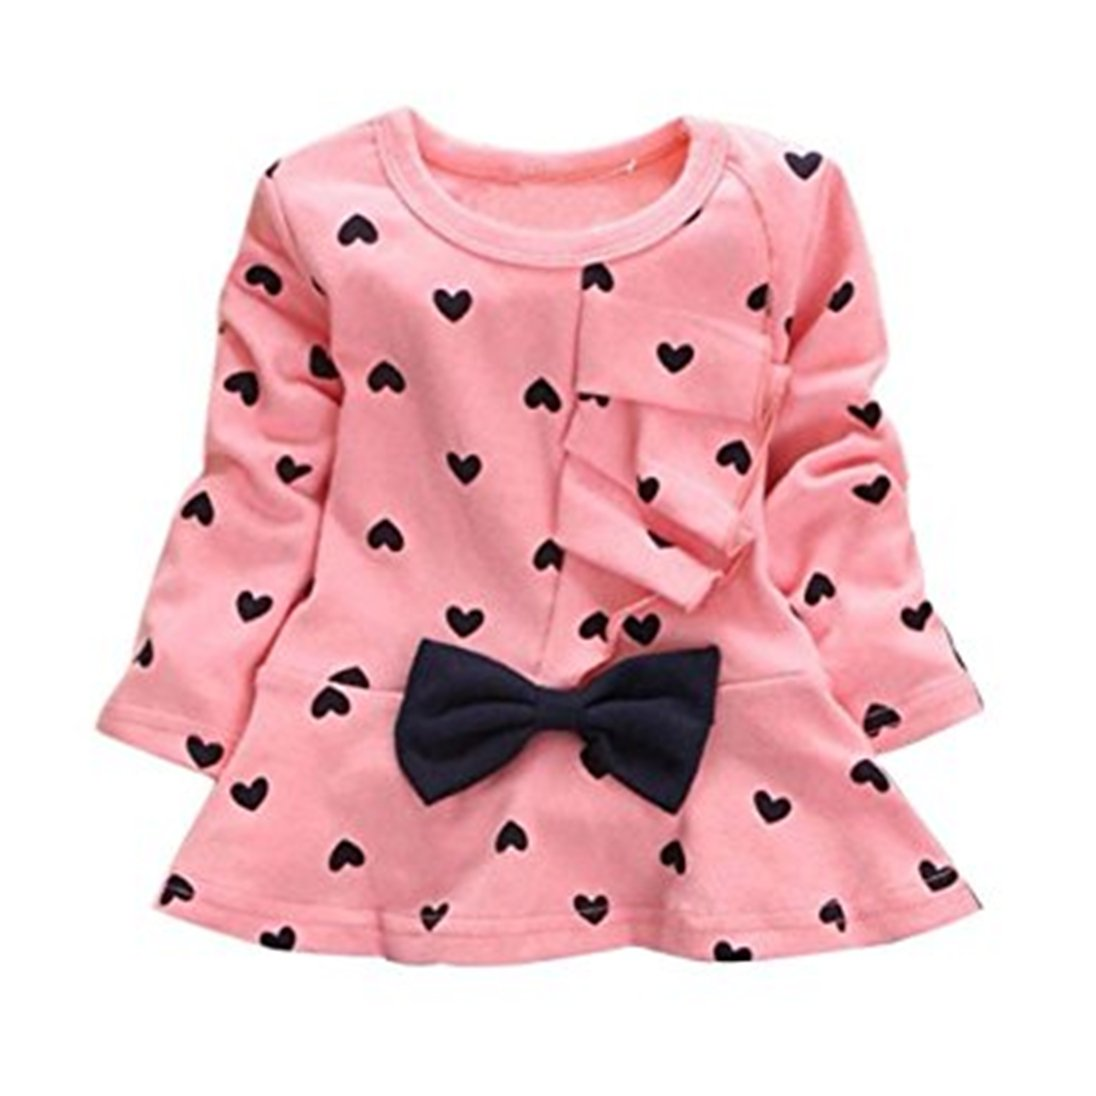 pu ran 0-24 Months Infant Baby Girls Heart Printed Cute Bowknot T-Shirt Tops Blouses